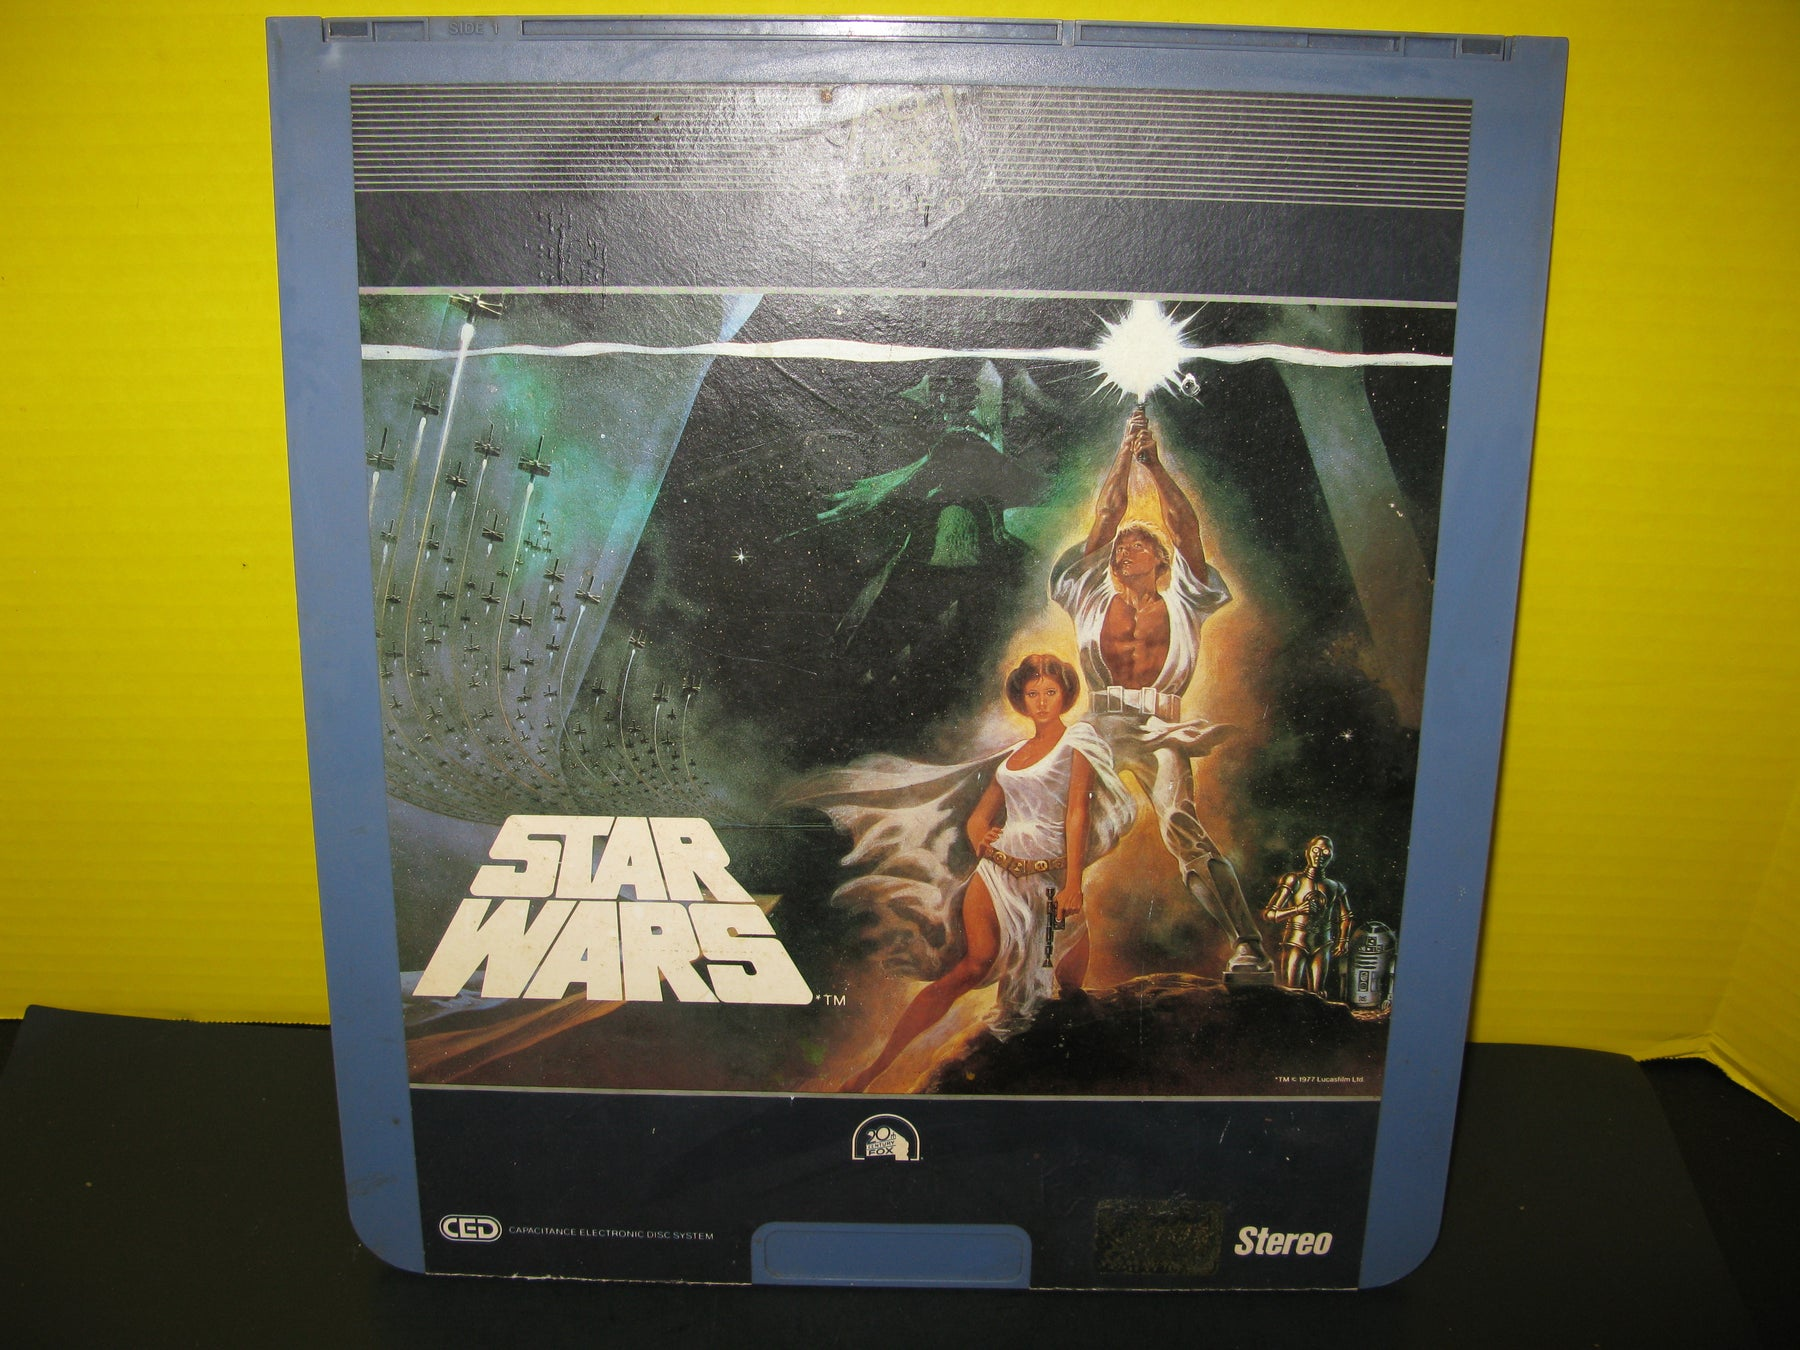 Star Wars Ced Capacitance Electronic Video Disc 1982 Fox First Release